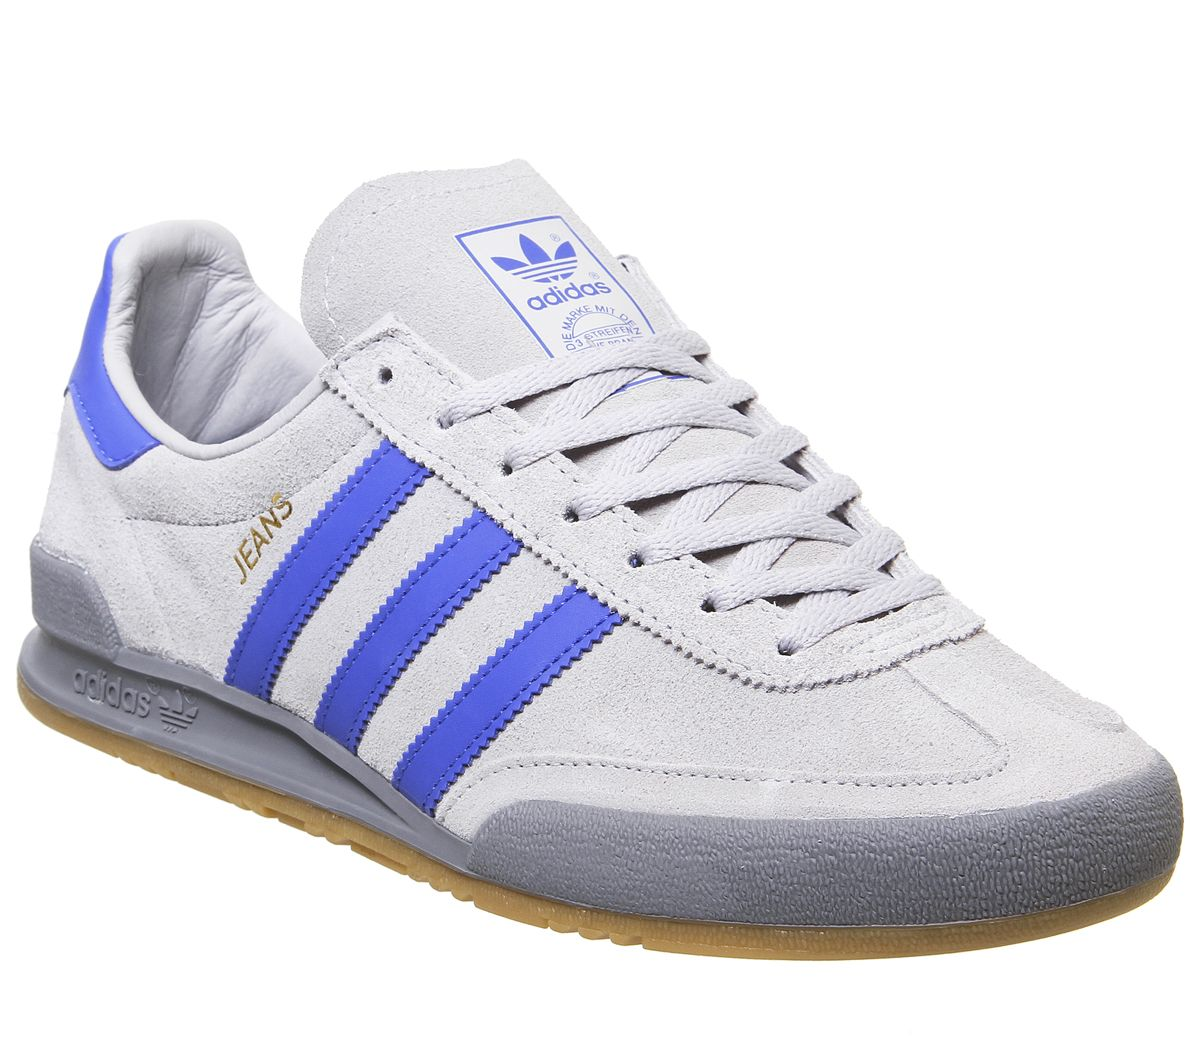 adidas Jeans shoes blue